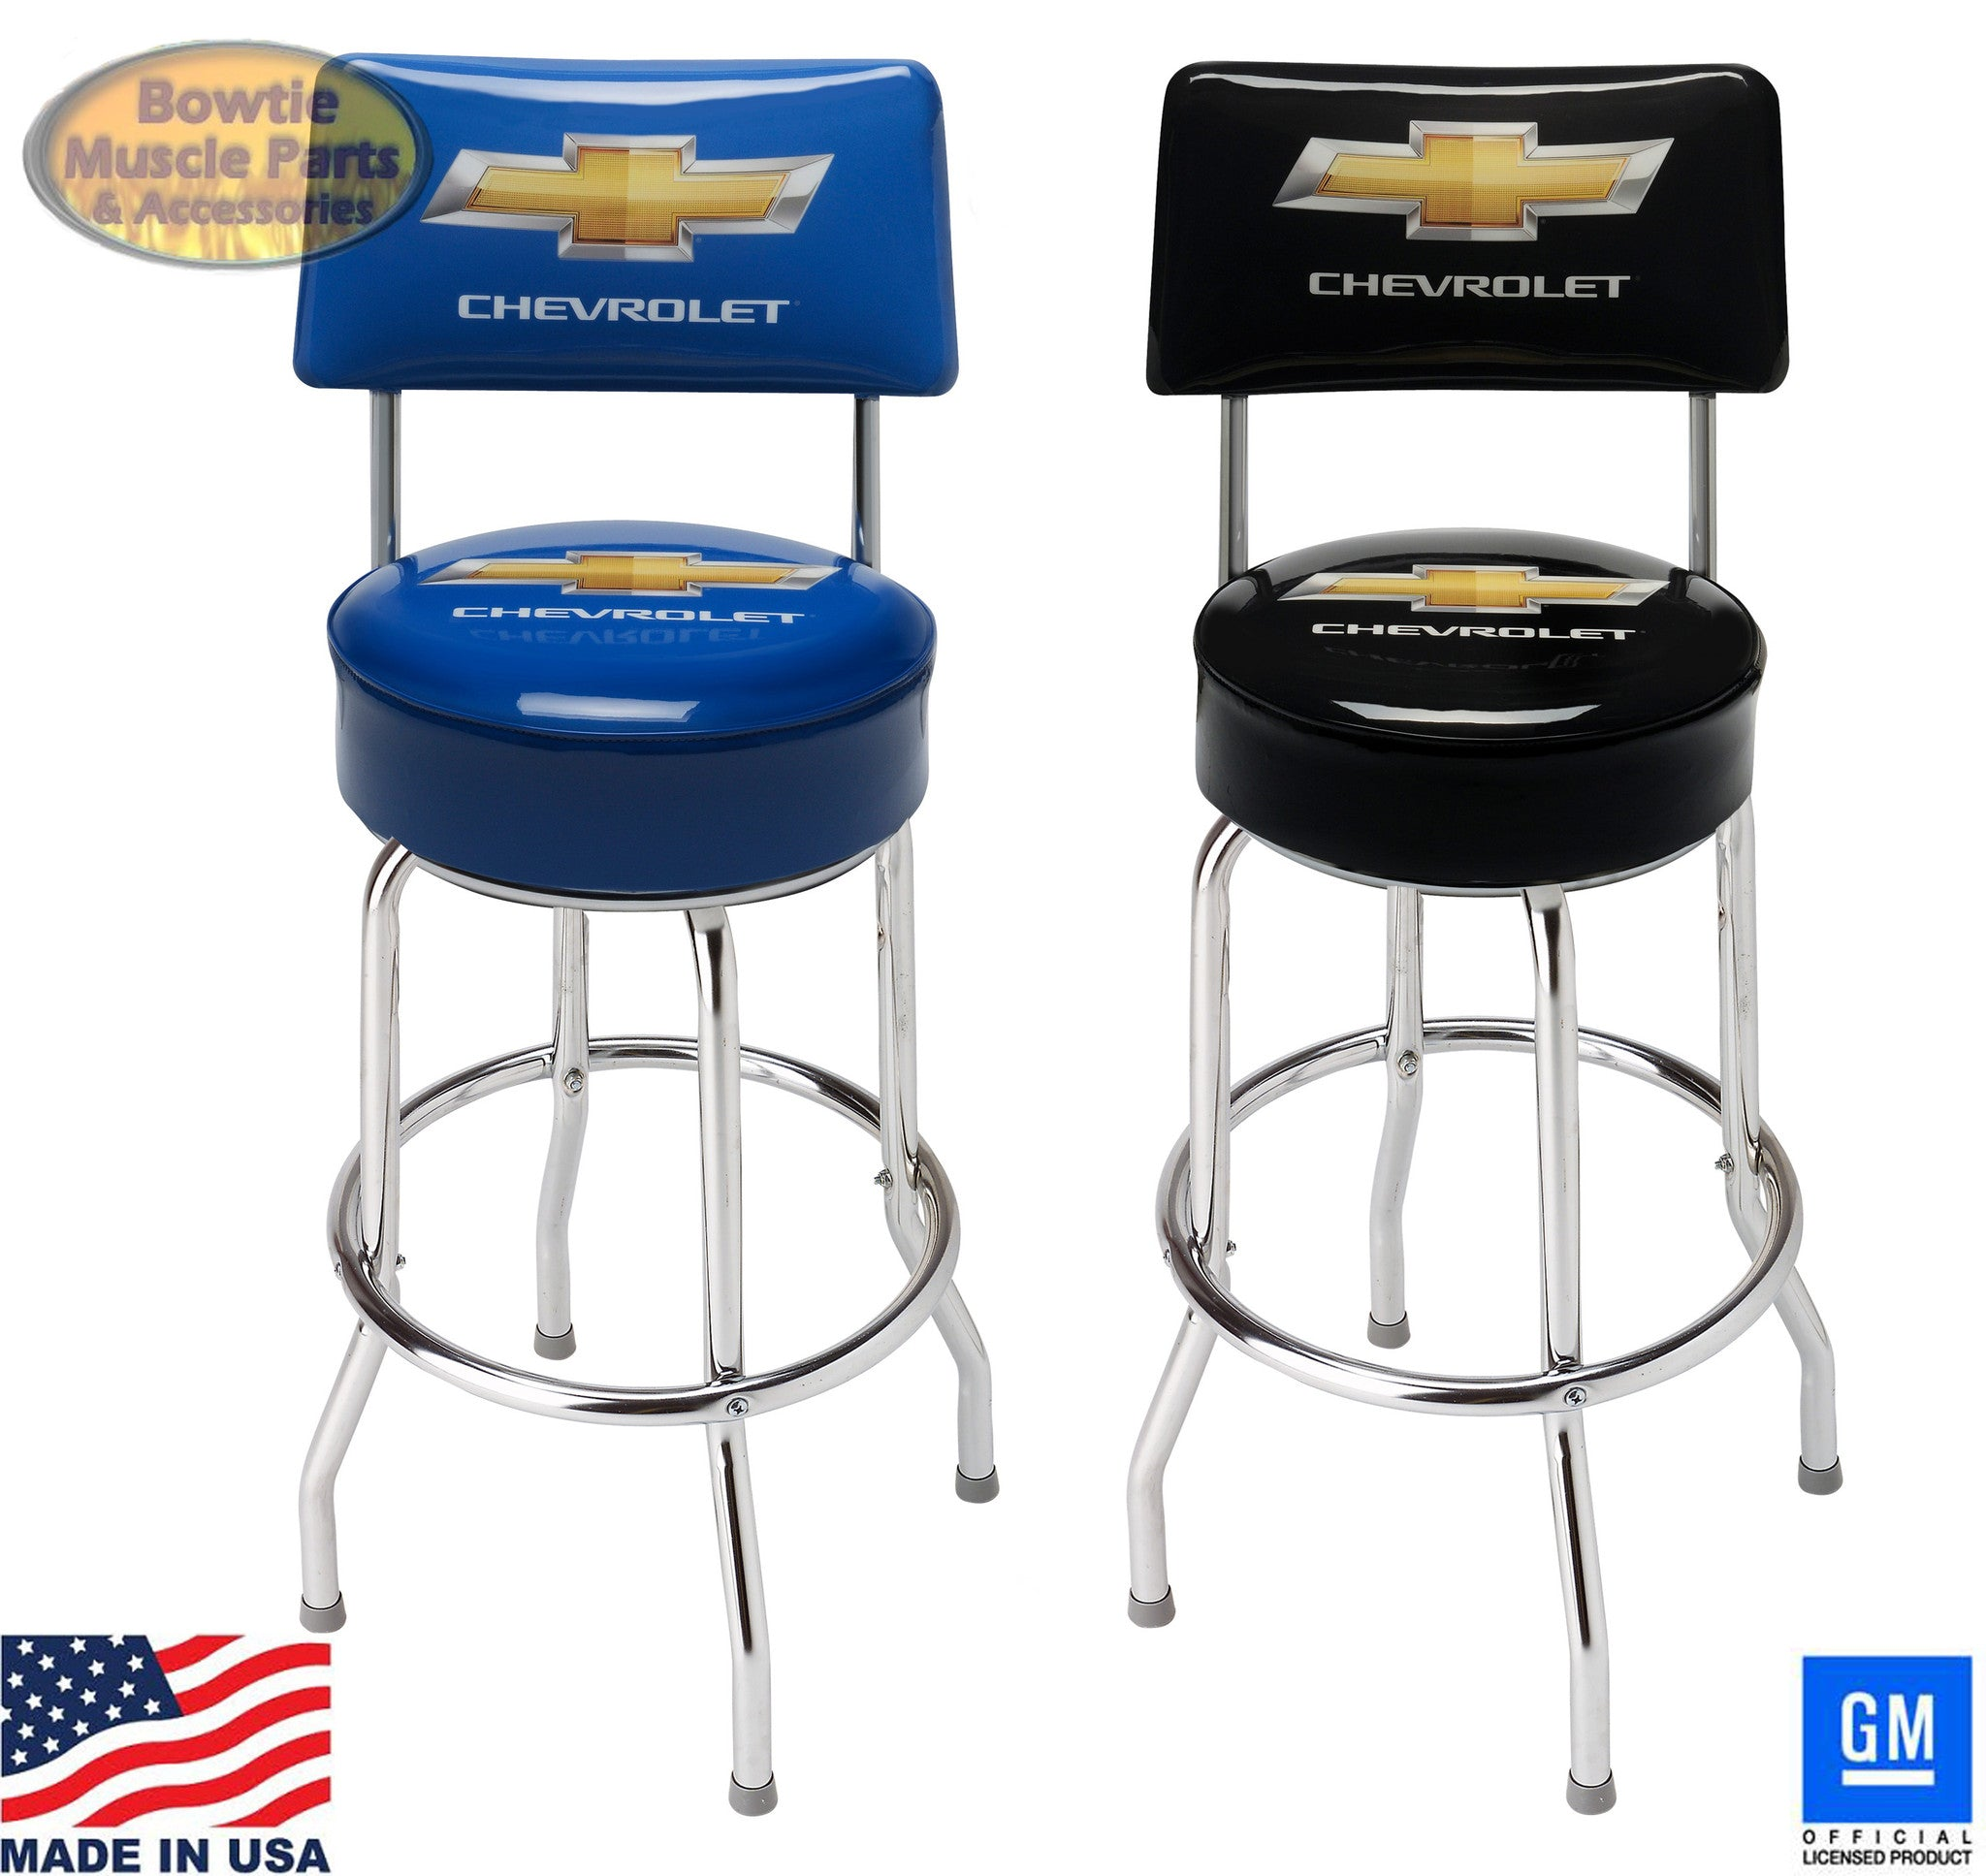 Chevrolet Bar Stool with Backrest